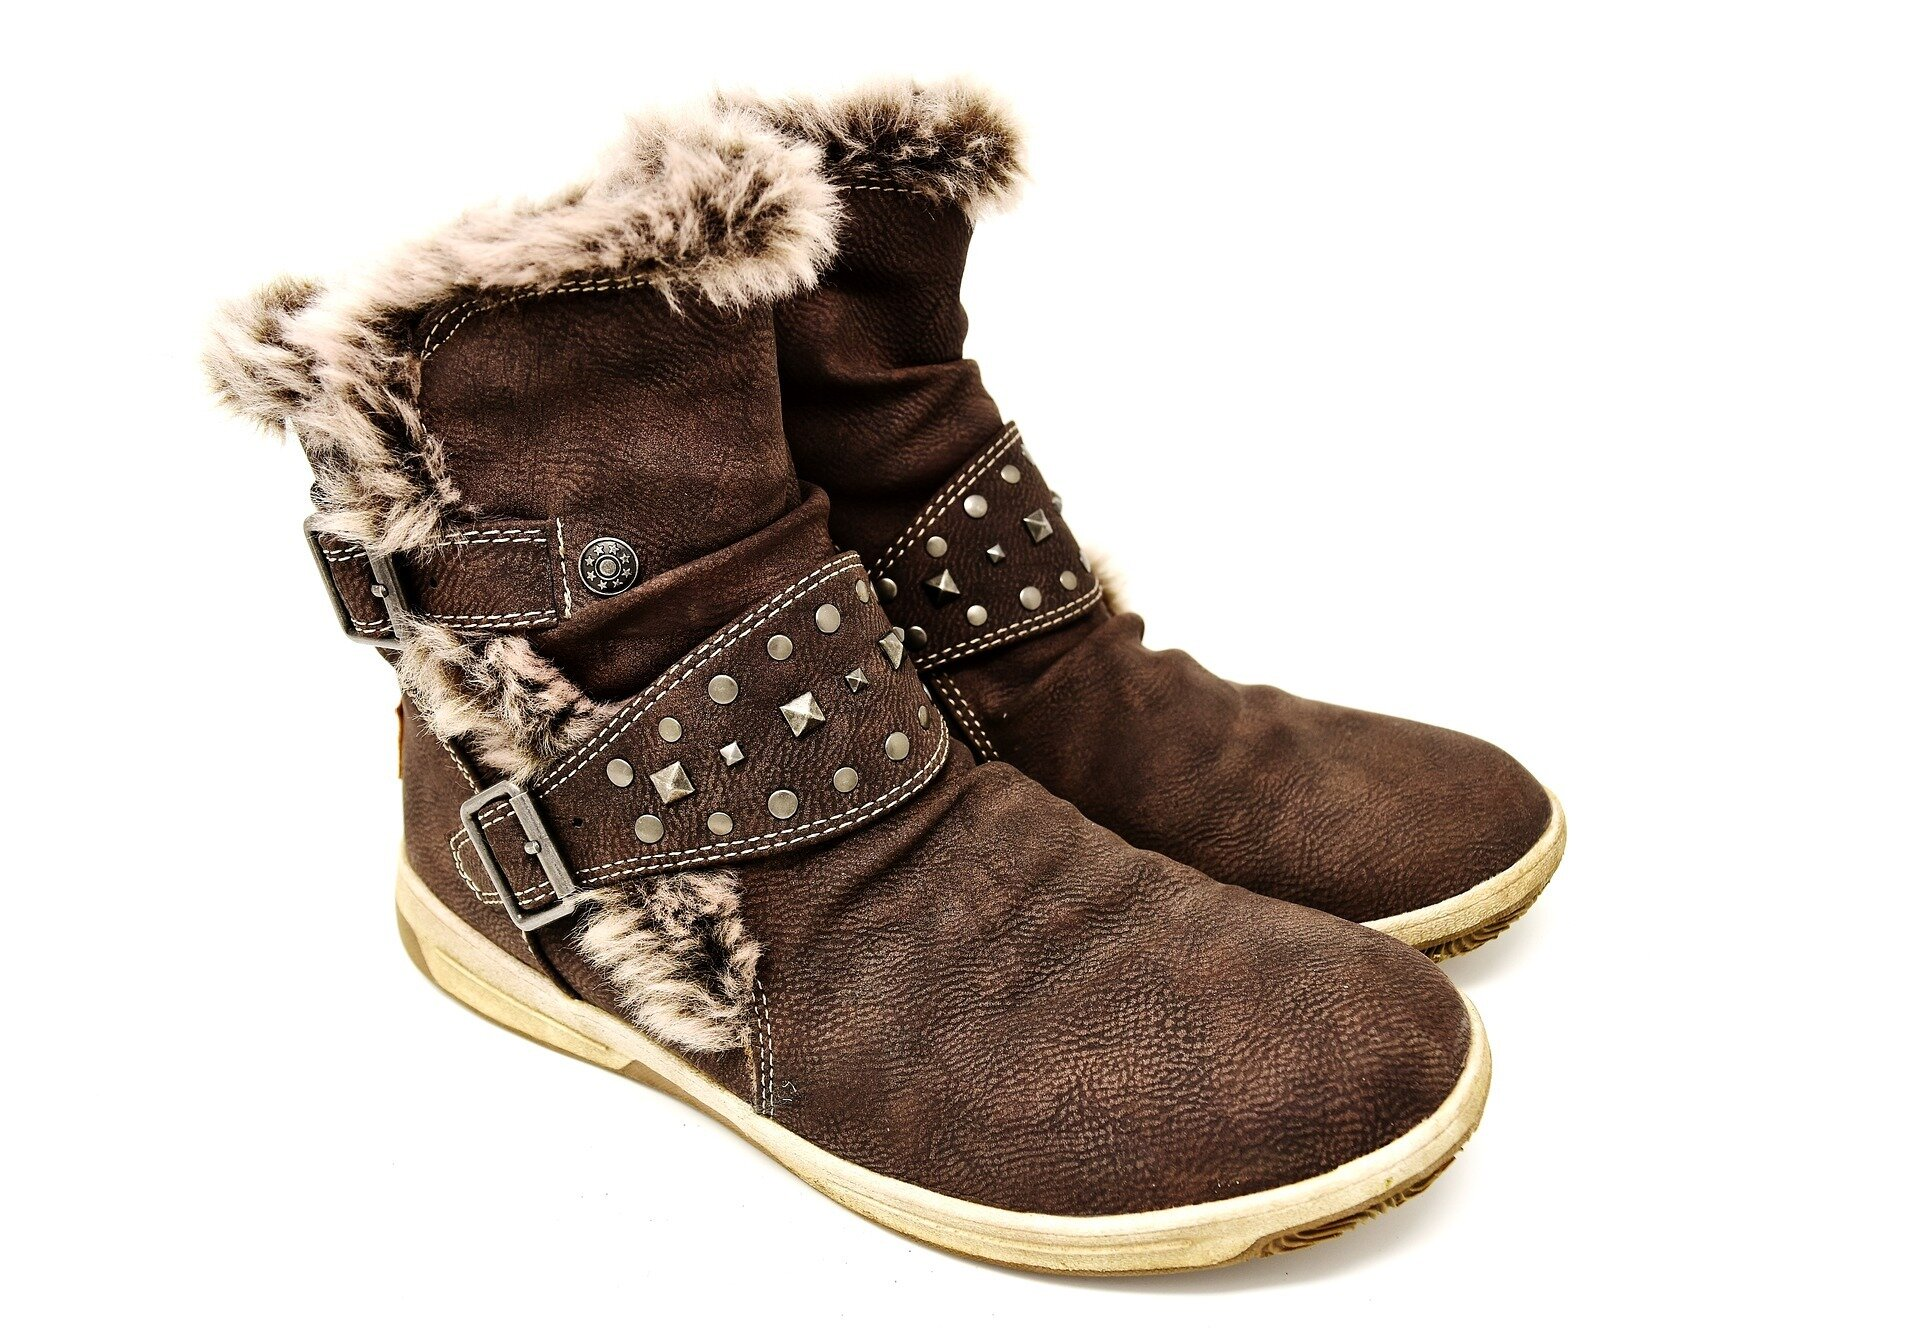 winter-boots-3059079_1920